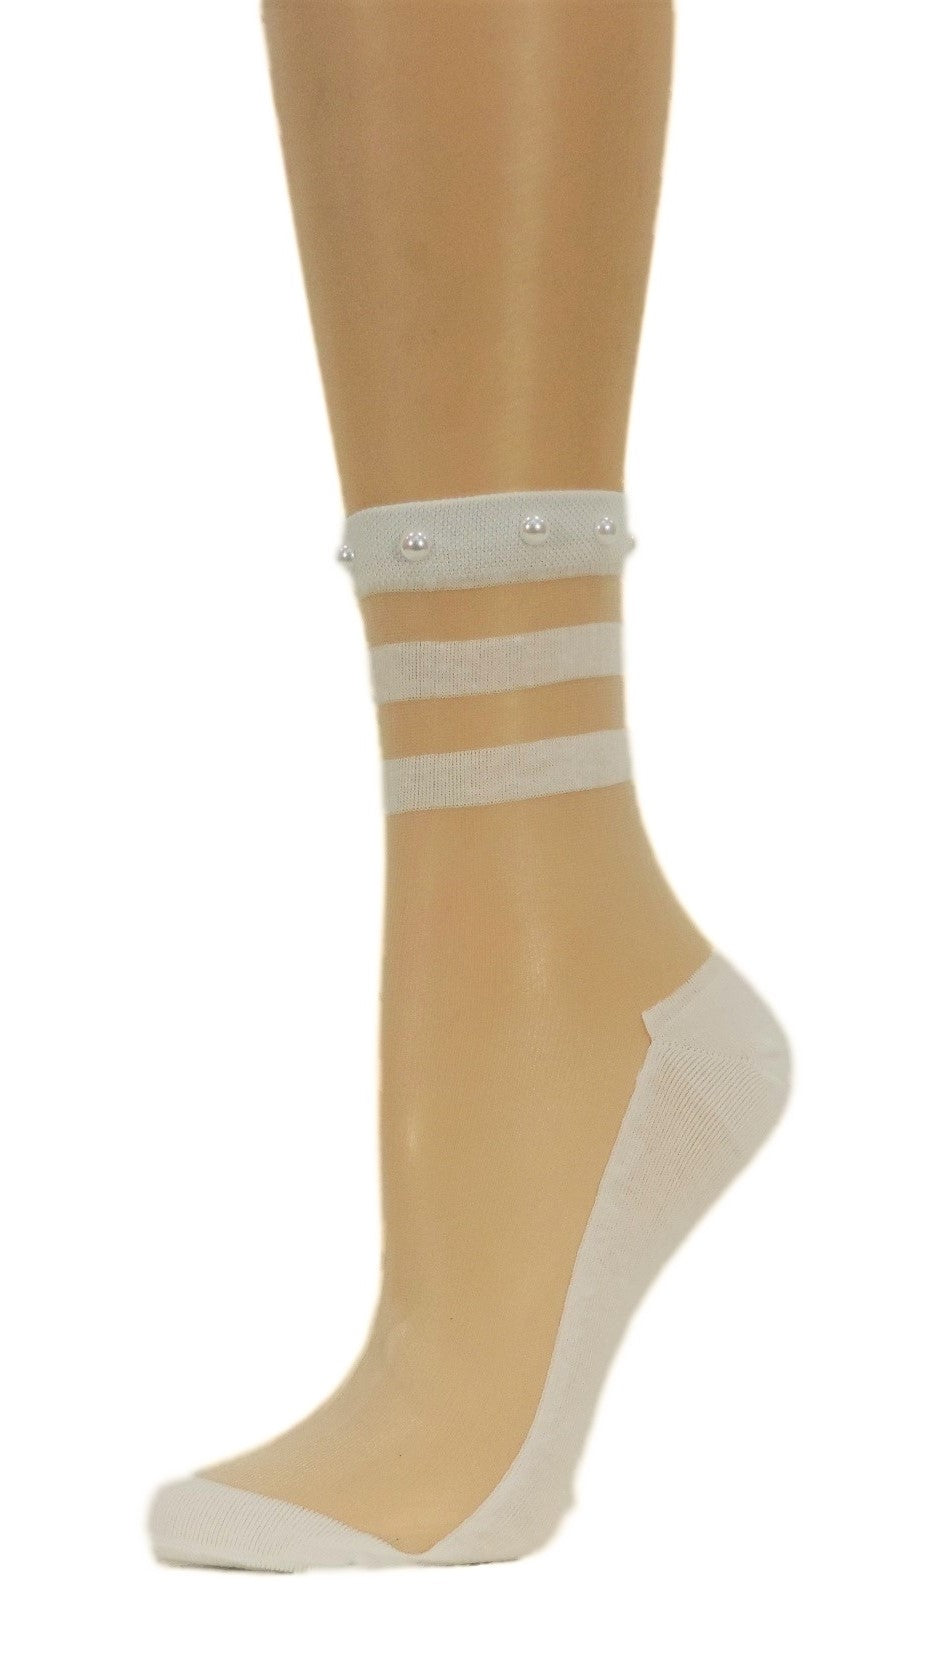 Classy White Striped Custom Sheer Socks with beads - Global Trendz Fashion®